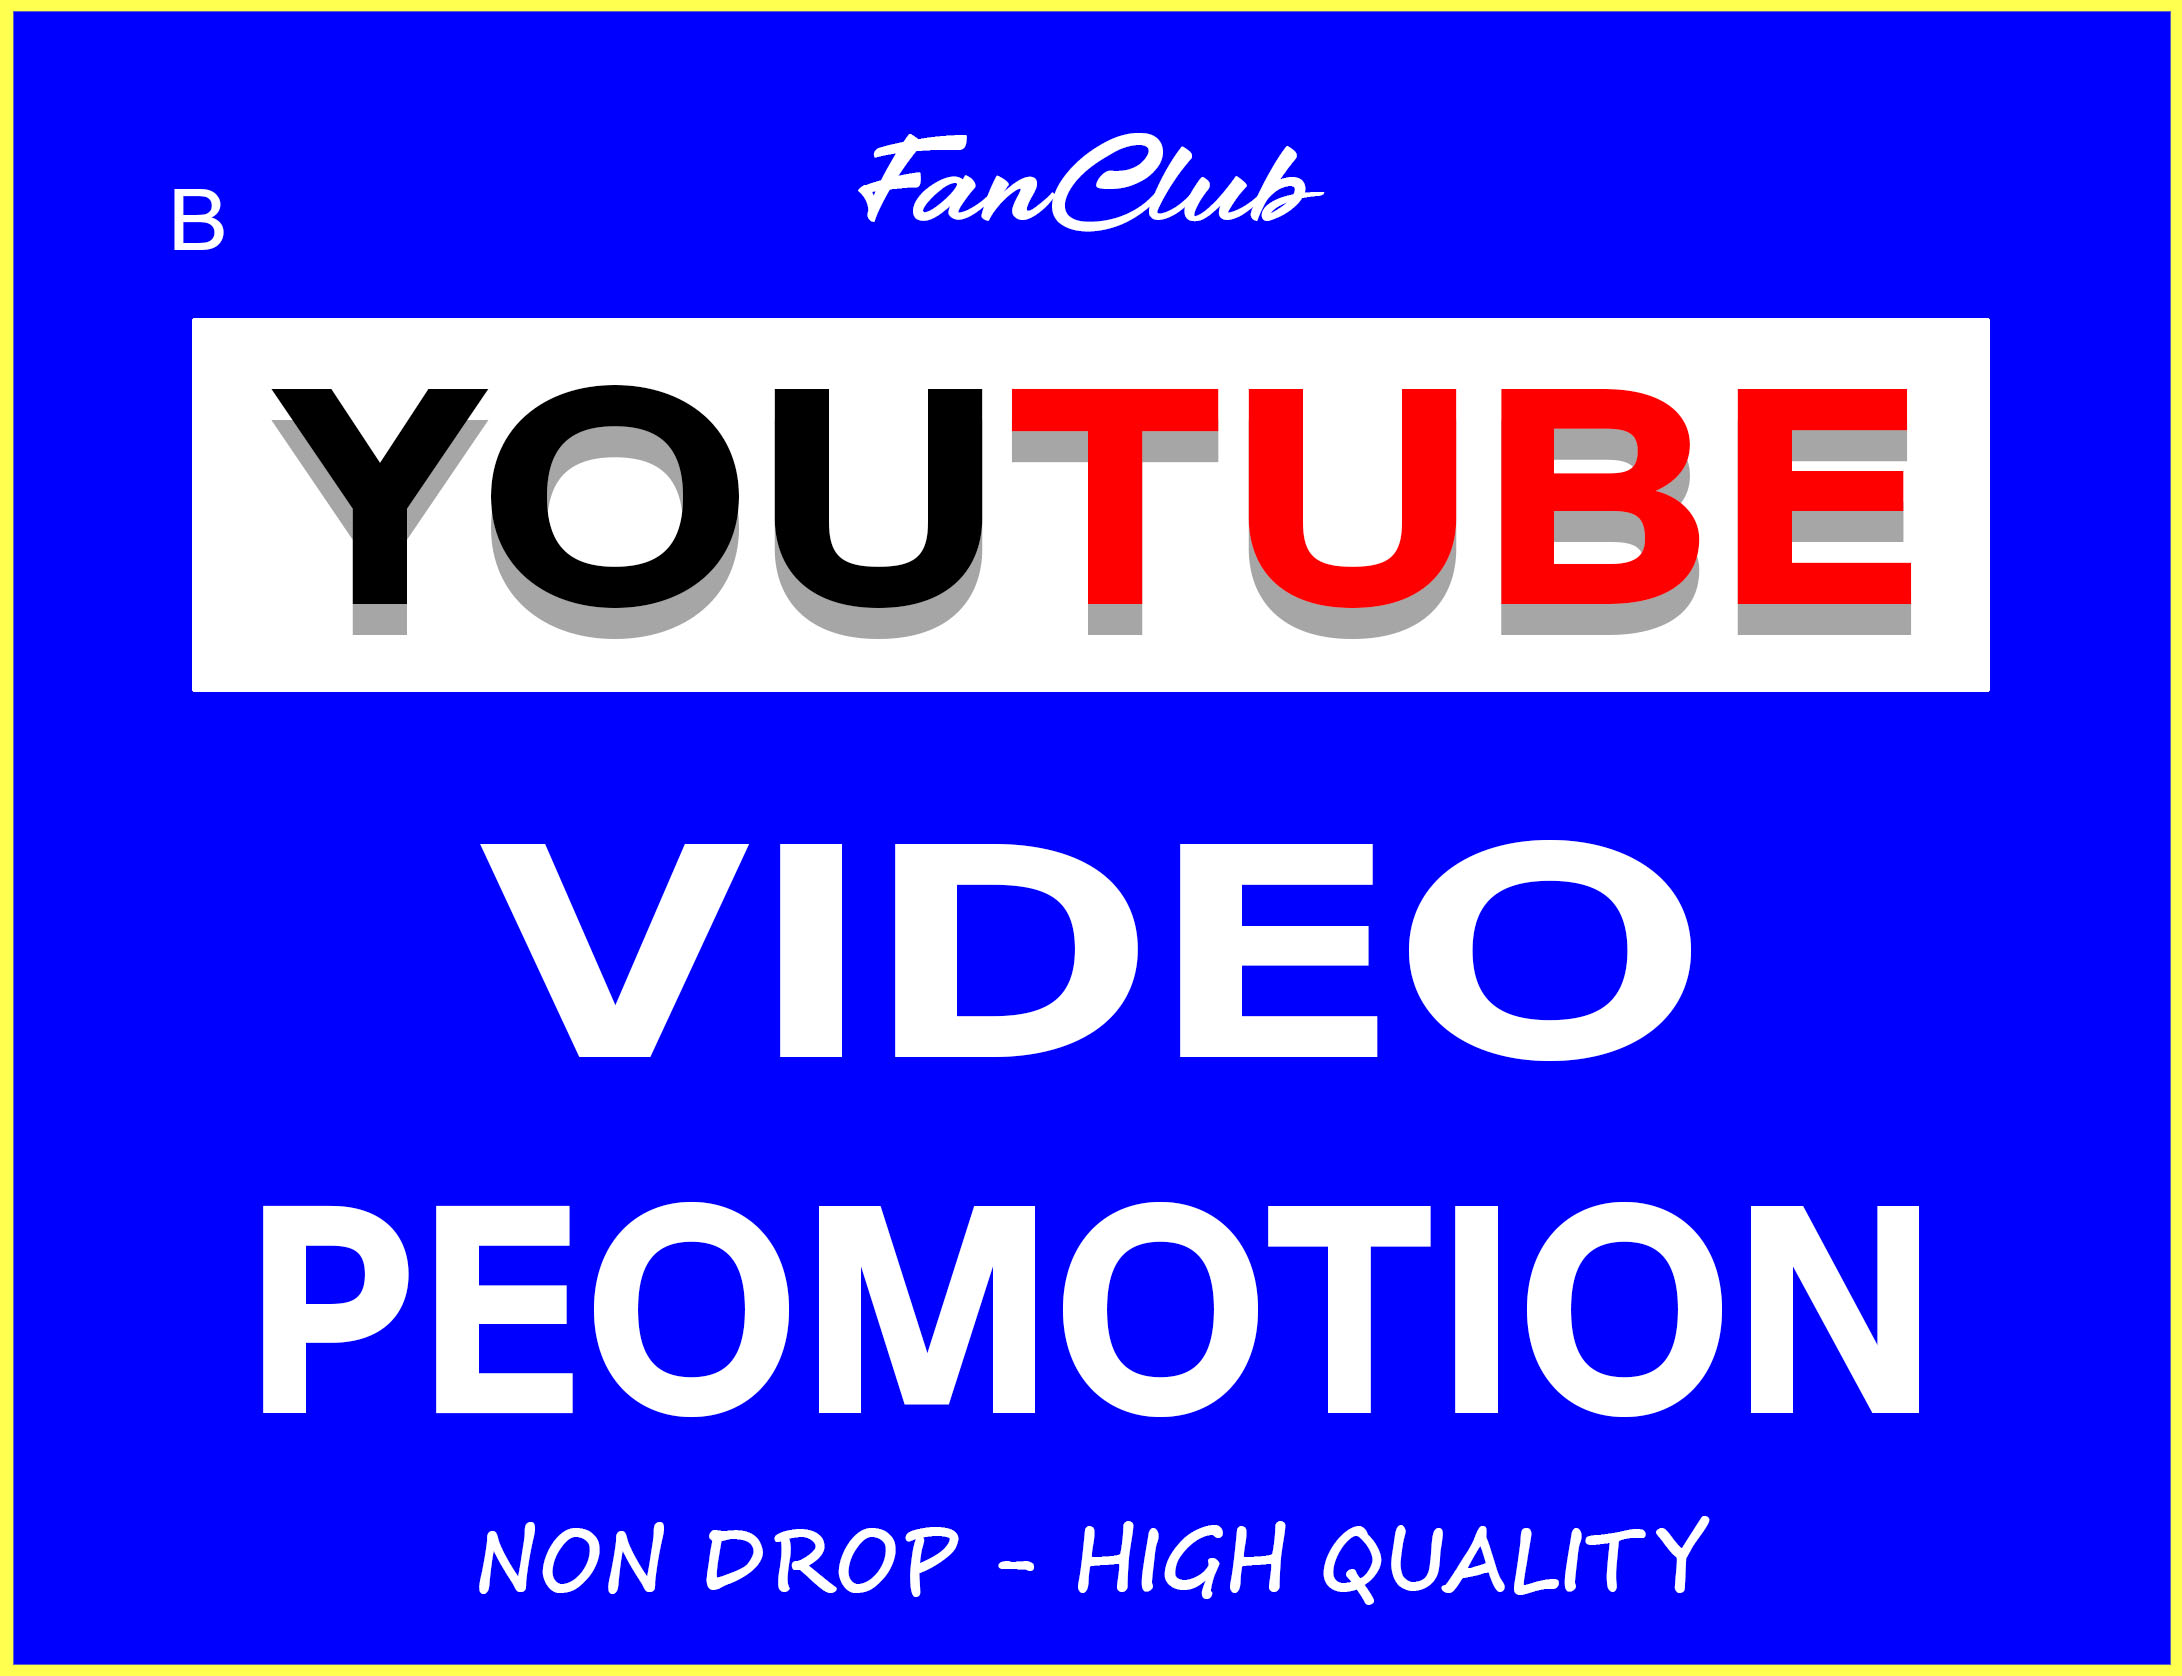 YOUTUBE VIDEO PROMOTION AND MARKETING REAL ORGANIC SUPER FAST AND NON DROP GUARANTEED